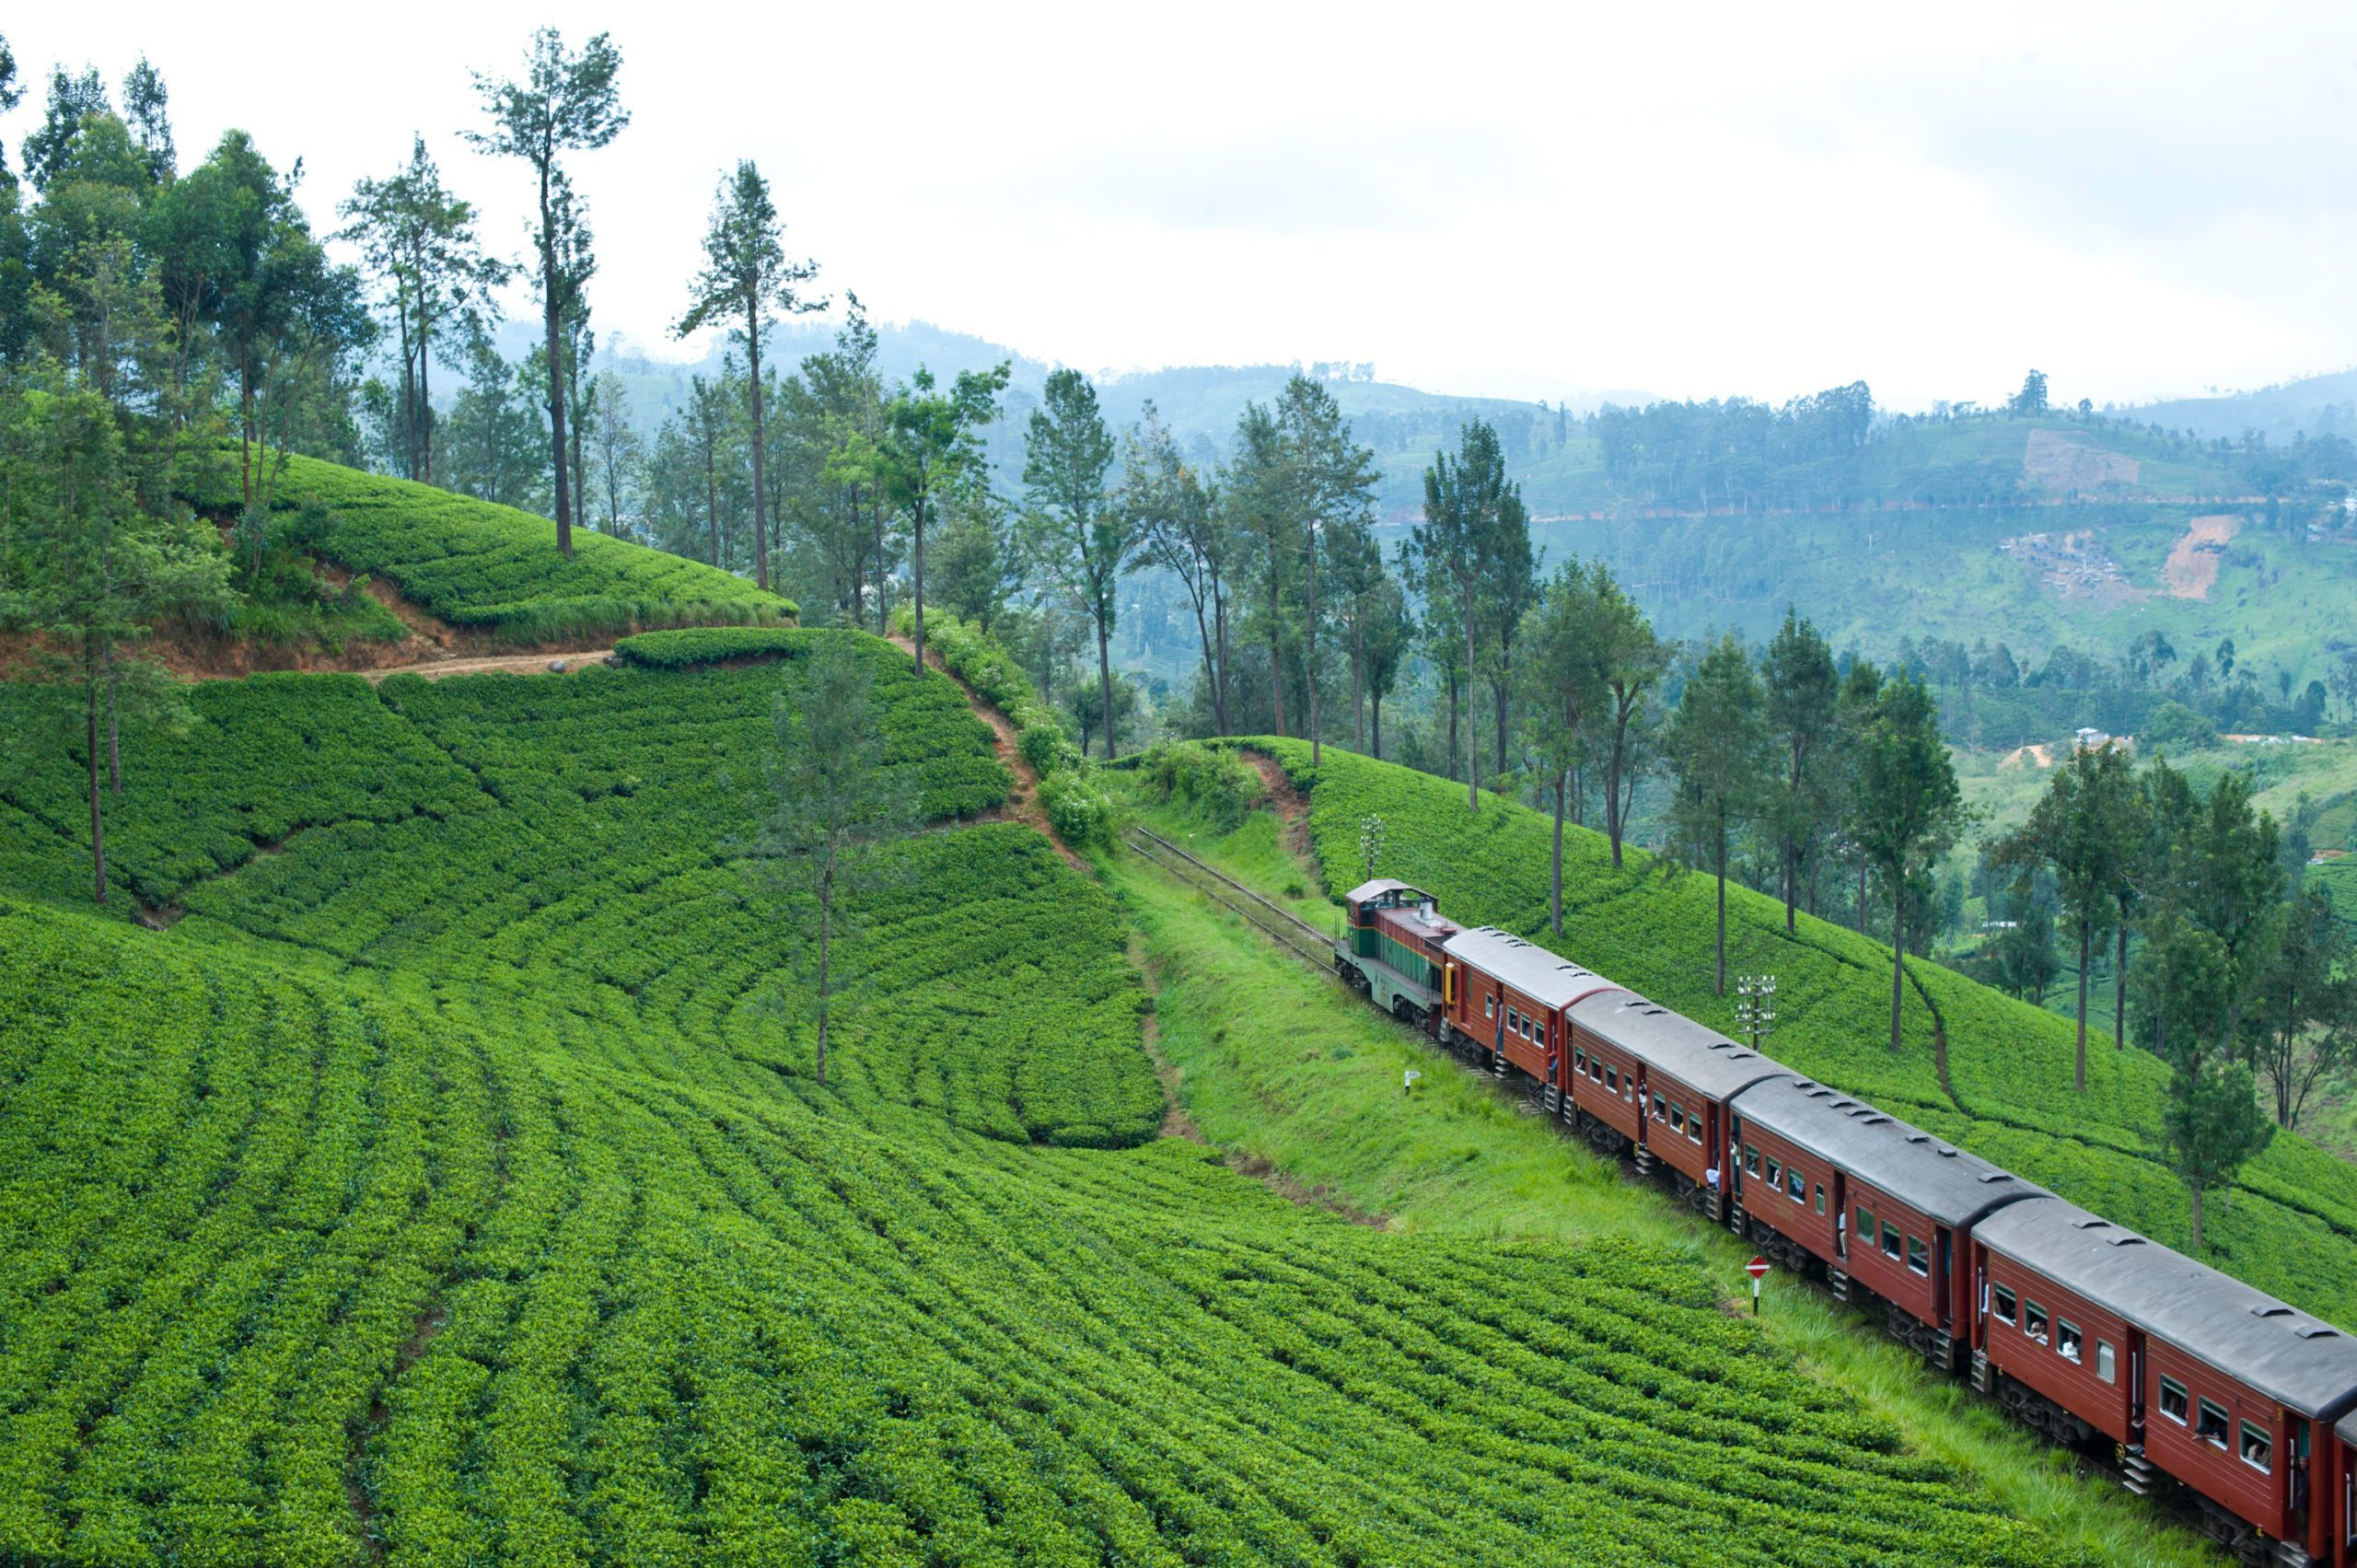 train going through the lush hillsides and tea plantations of sri lanka on an Indian Subcontinent safari